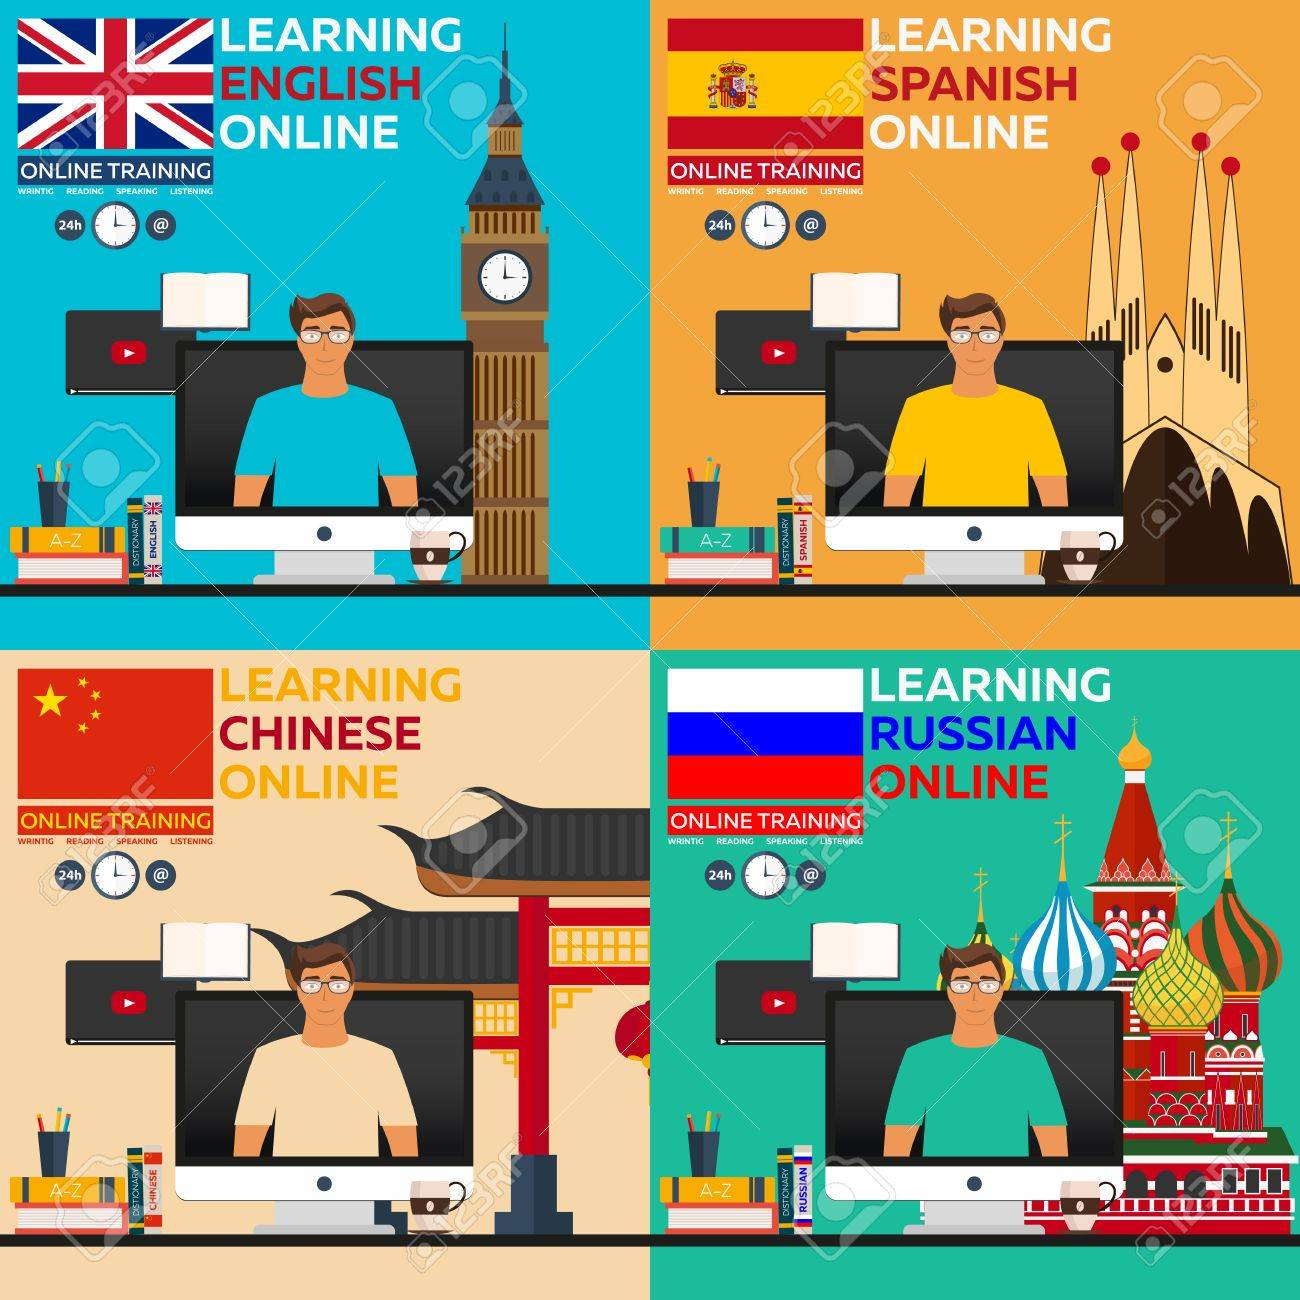 Learning language online. Russian language, english langluage.